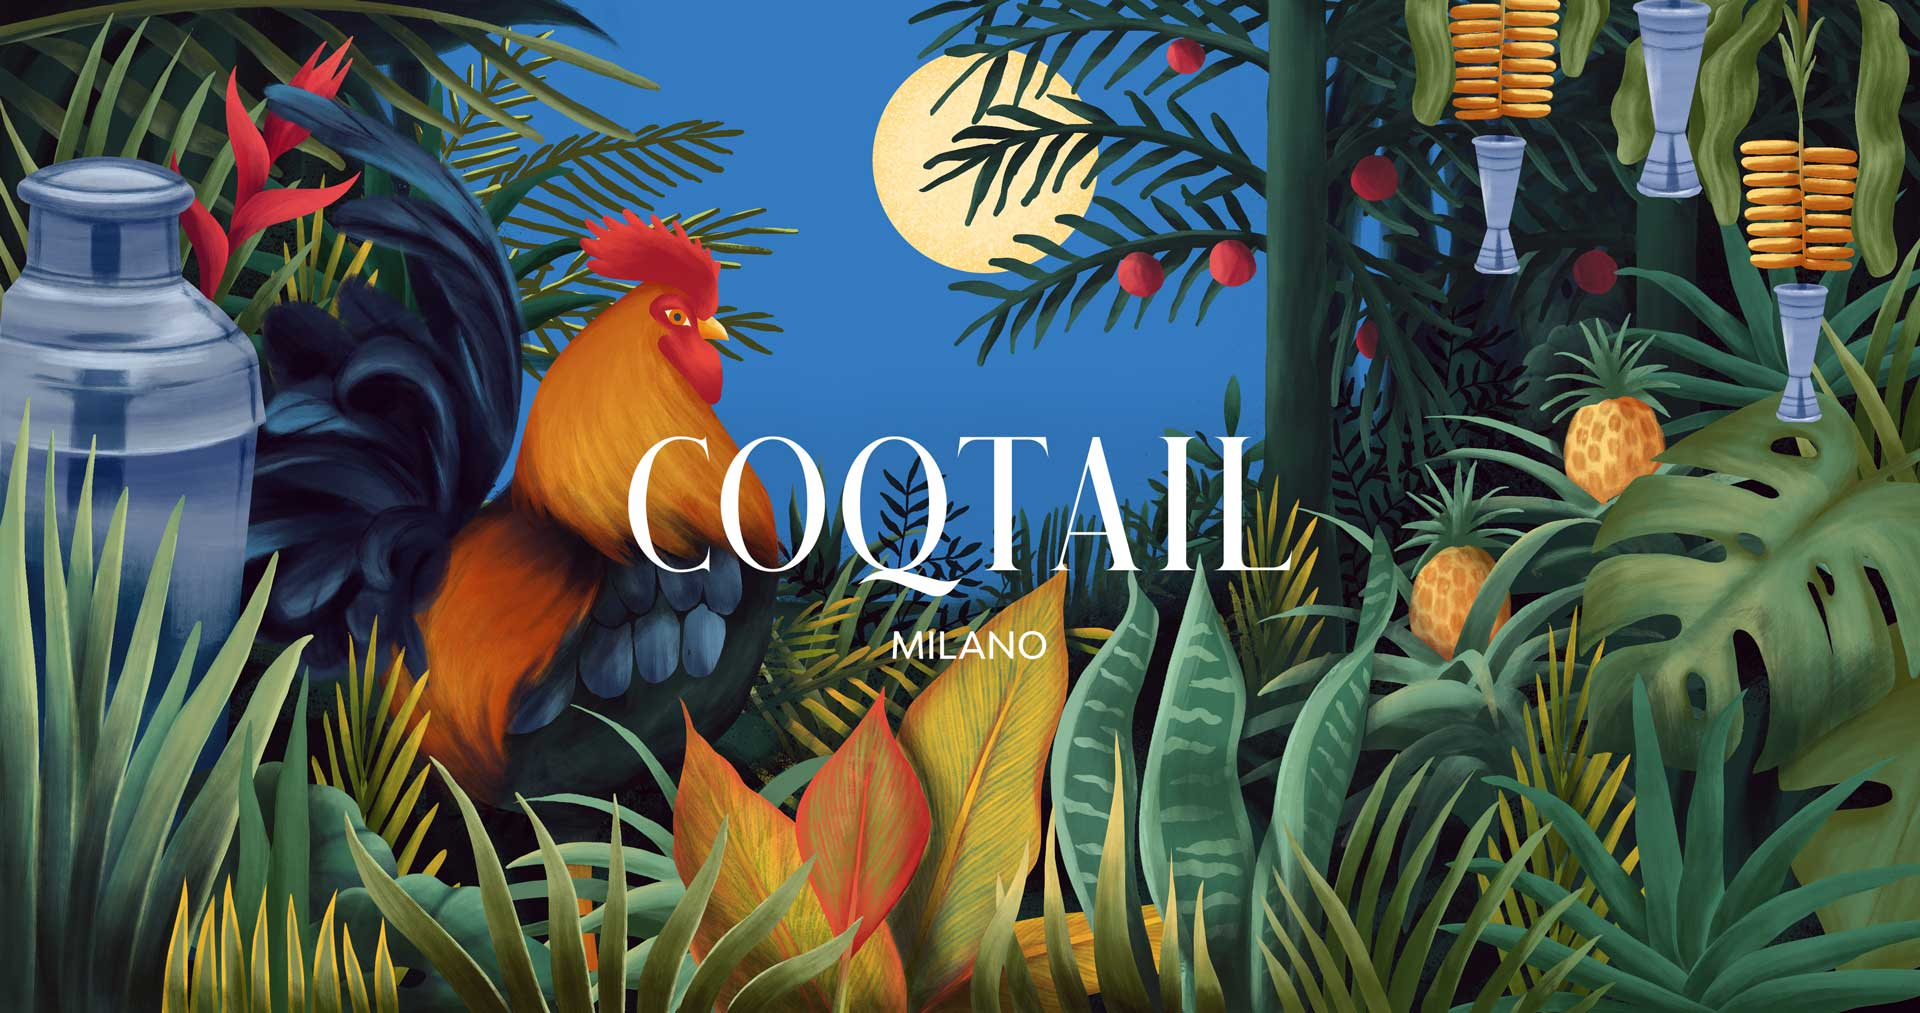 Coqtail-Milano-Mixology